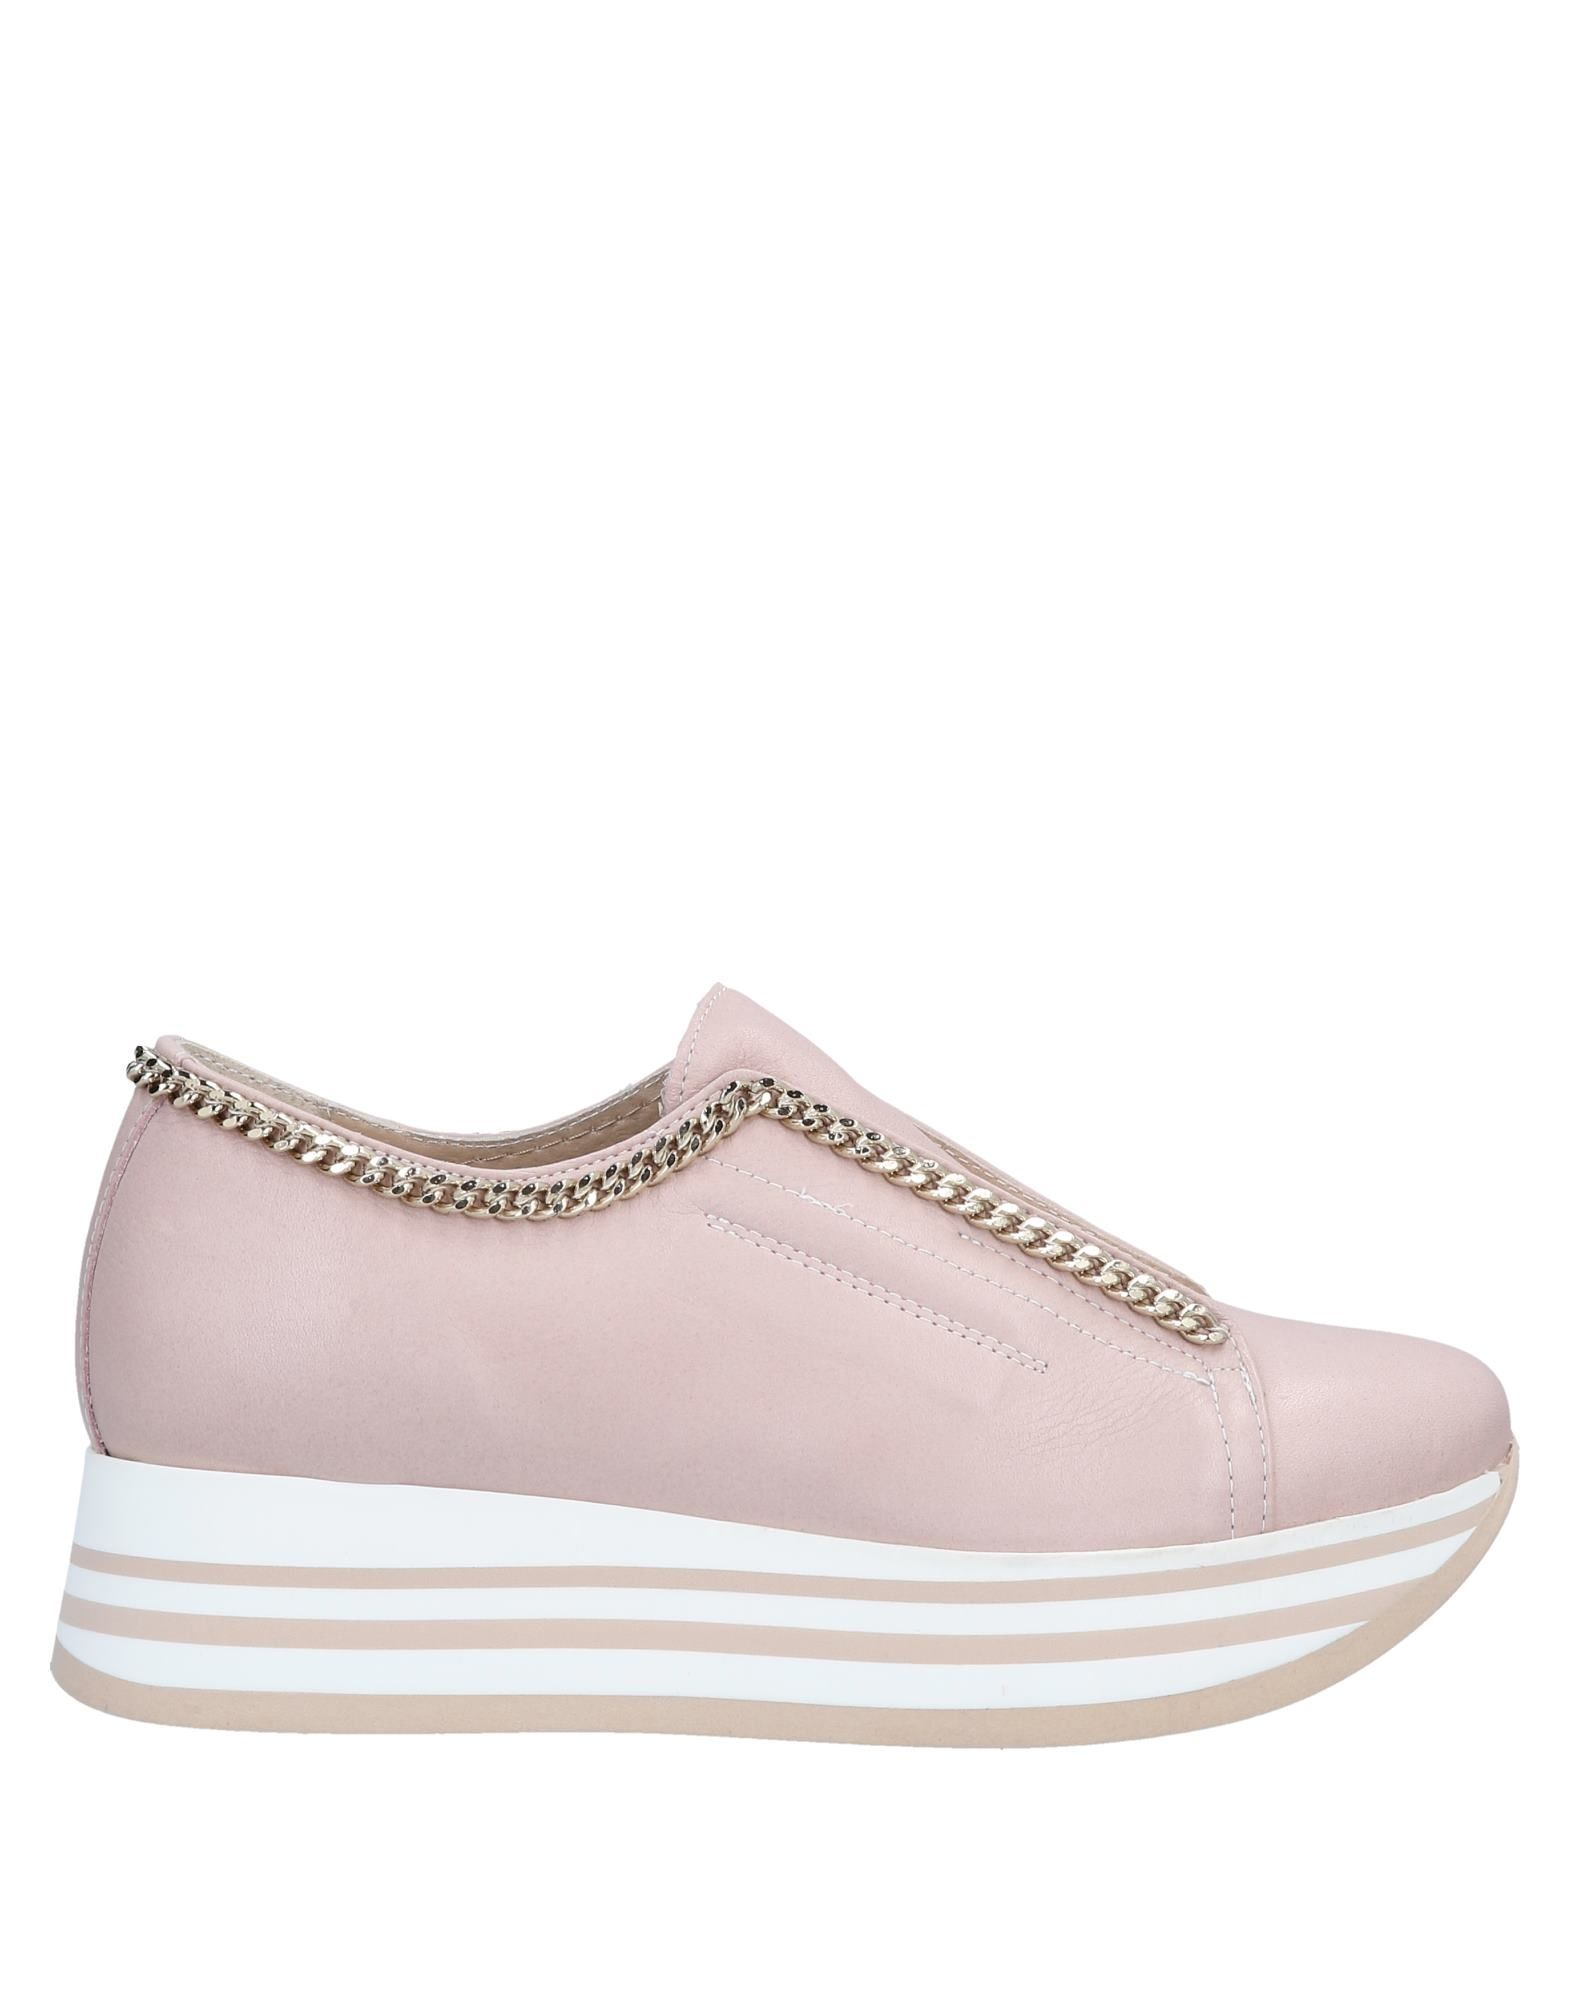 Loretta Pettinari Sneakers - Women Loretta  Pettinari Sneakers online on  Loretta United Kingdom - 11564809GJ 3d4ab0